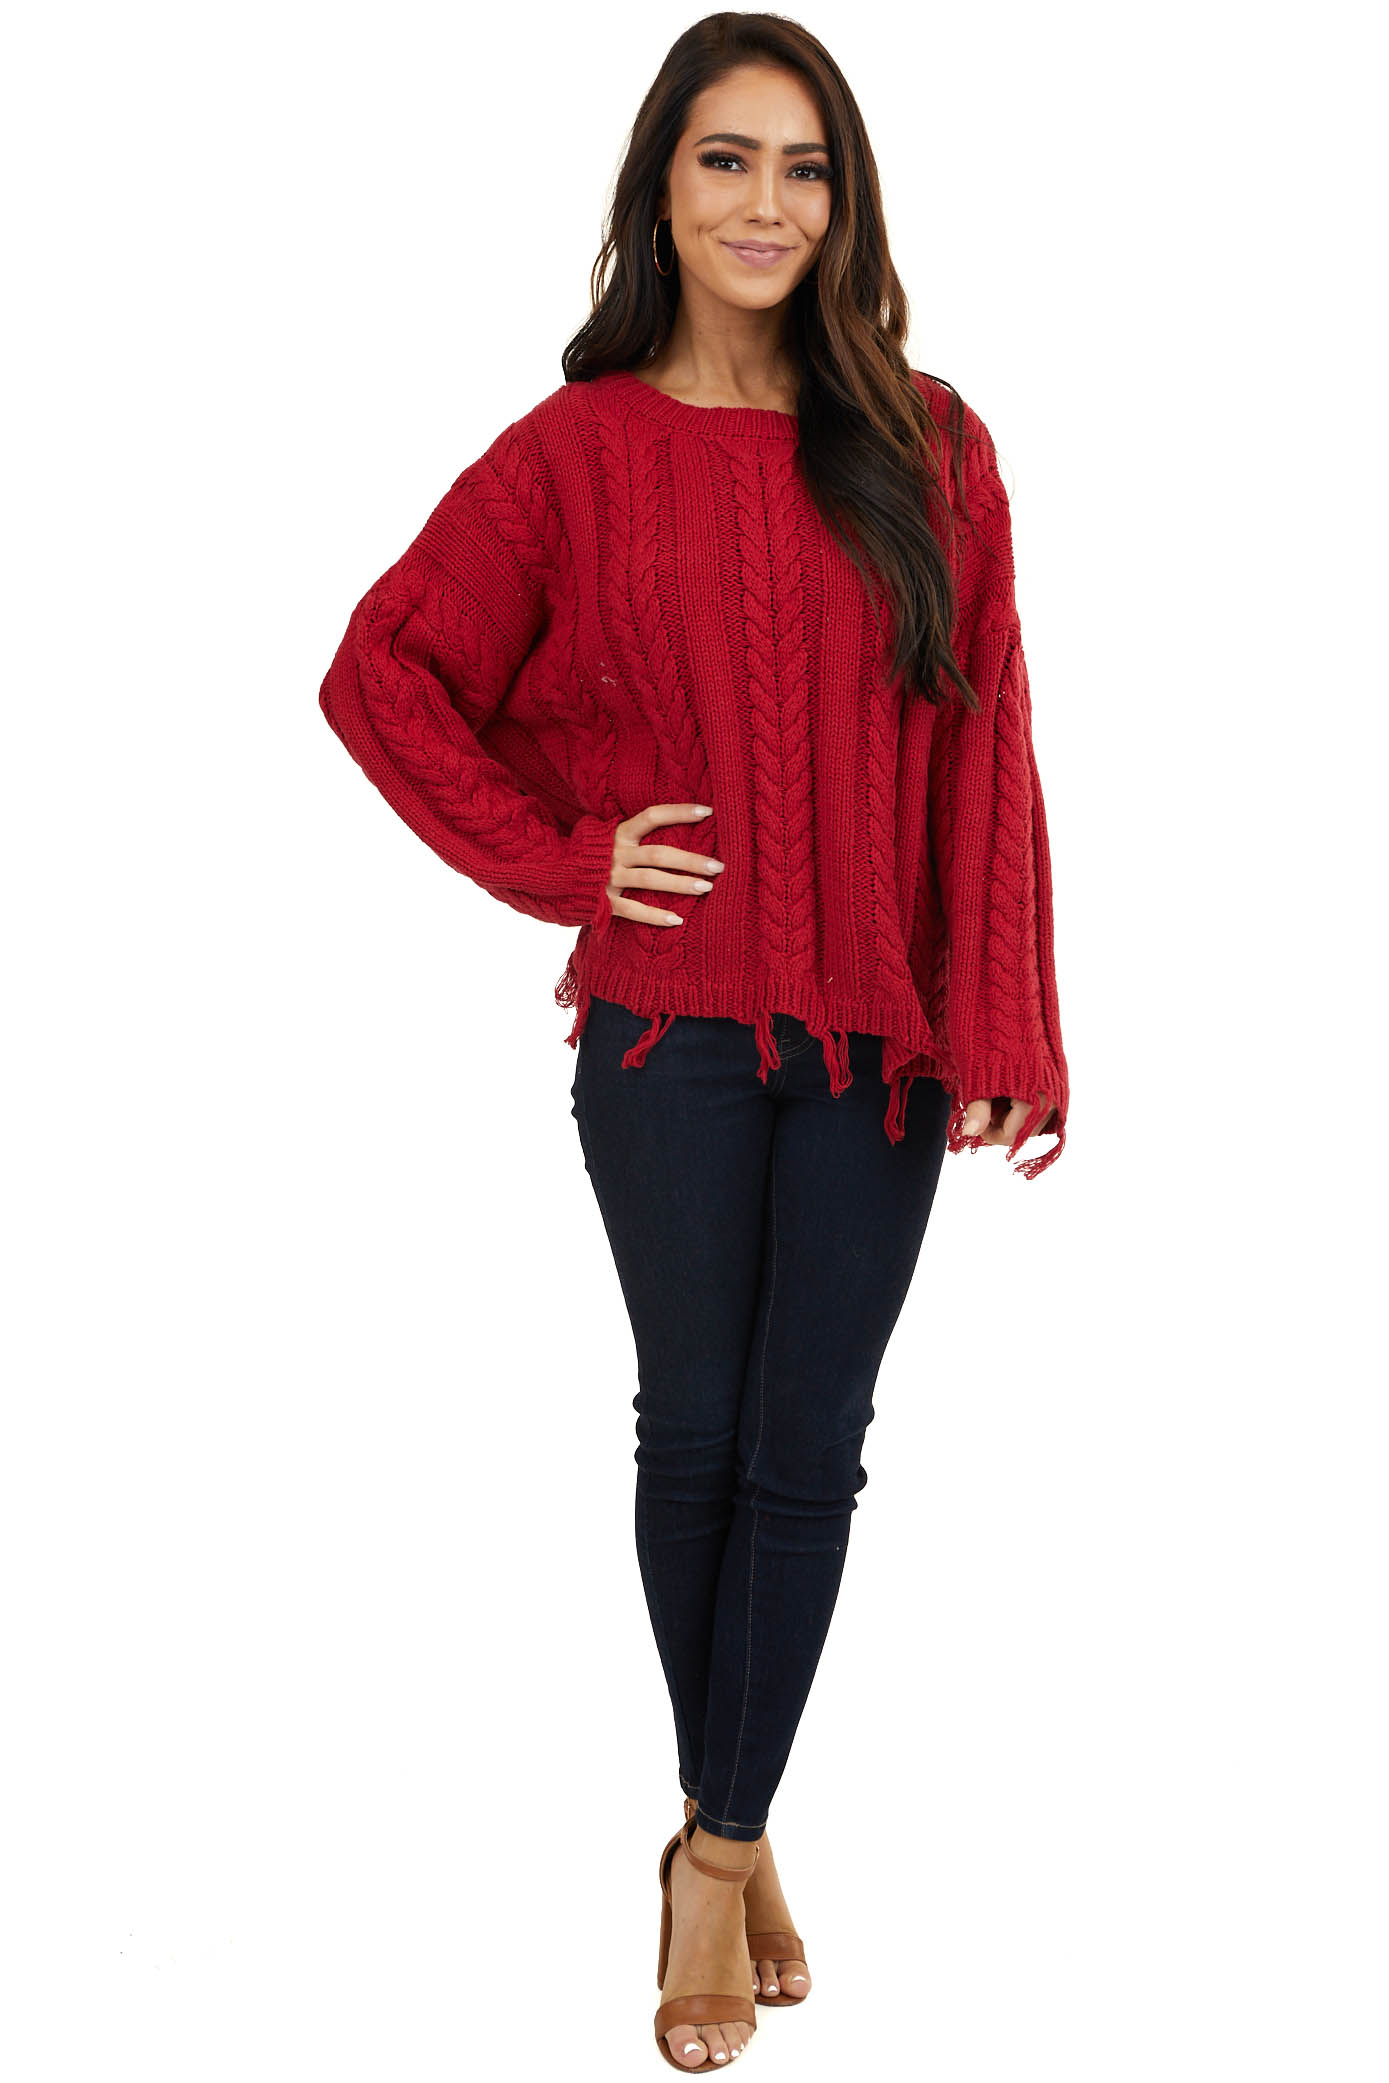 Maroon Heavyweight Multi Knit Sweater with Frayed Hems